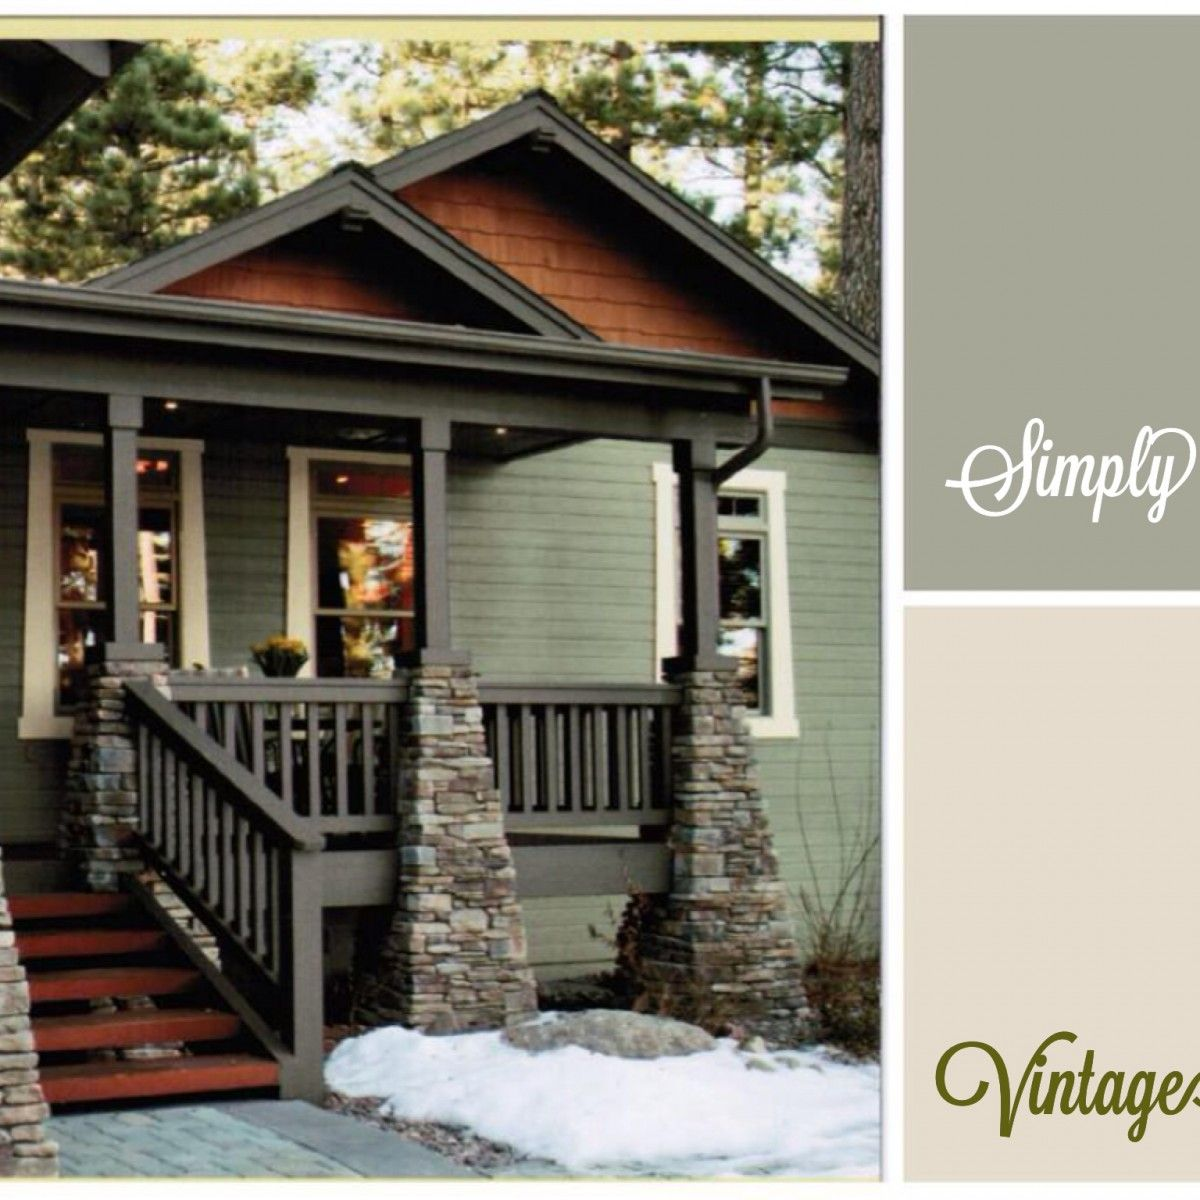 Sage green exterior paint colors paint colours pinteres for Paint colors for house exterior with photos